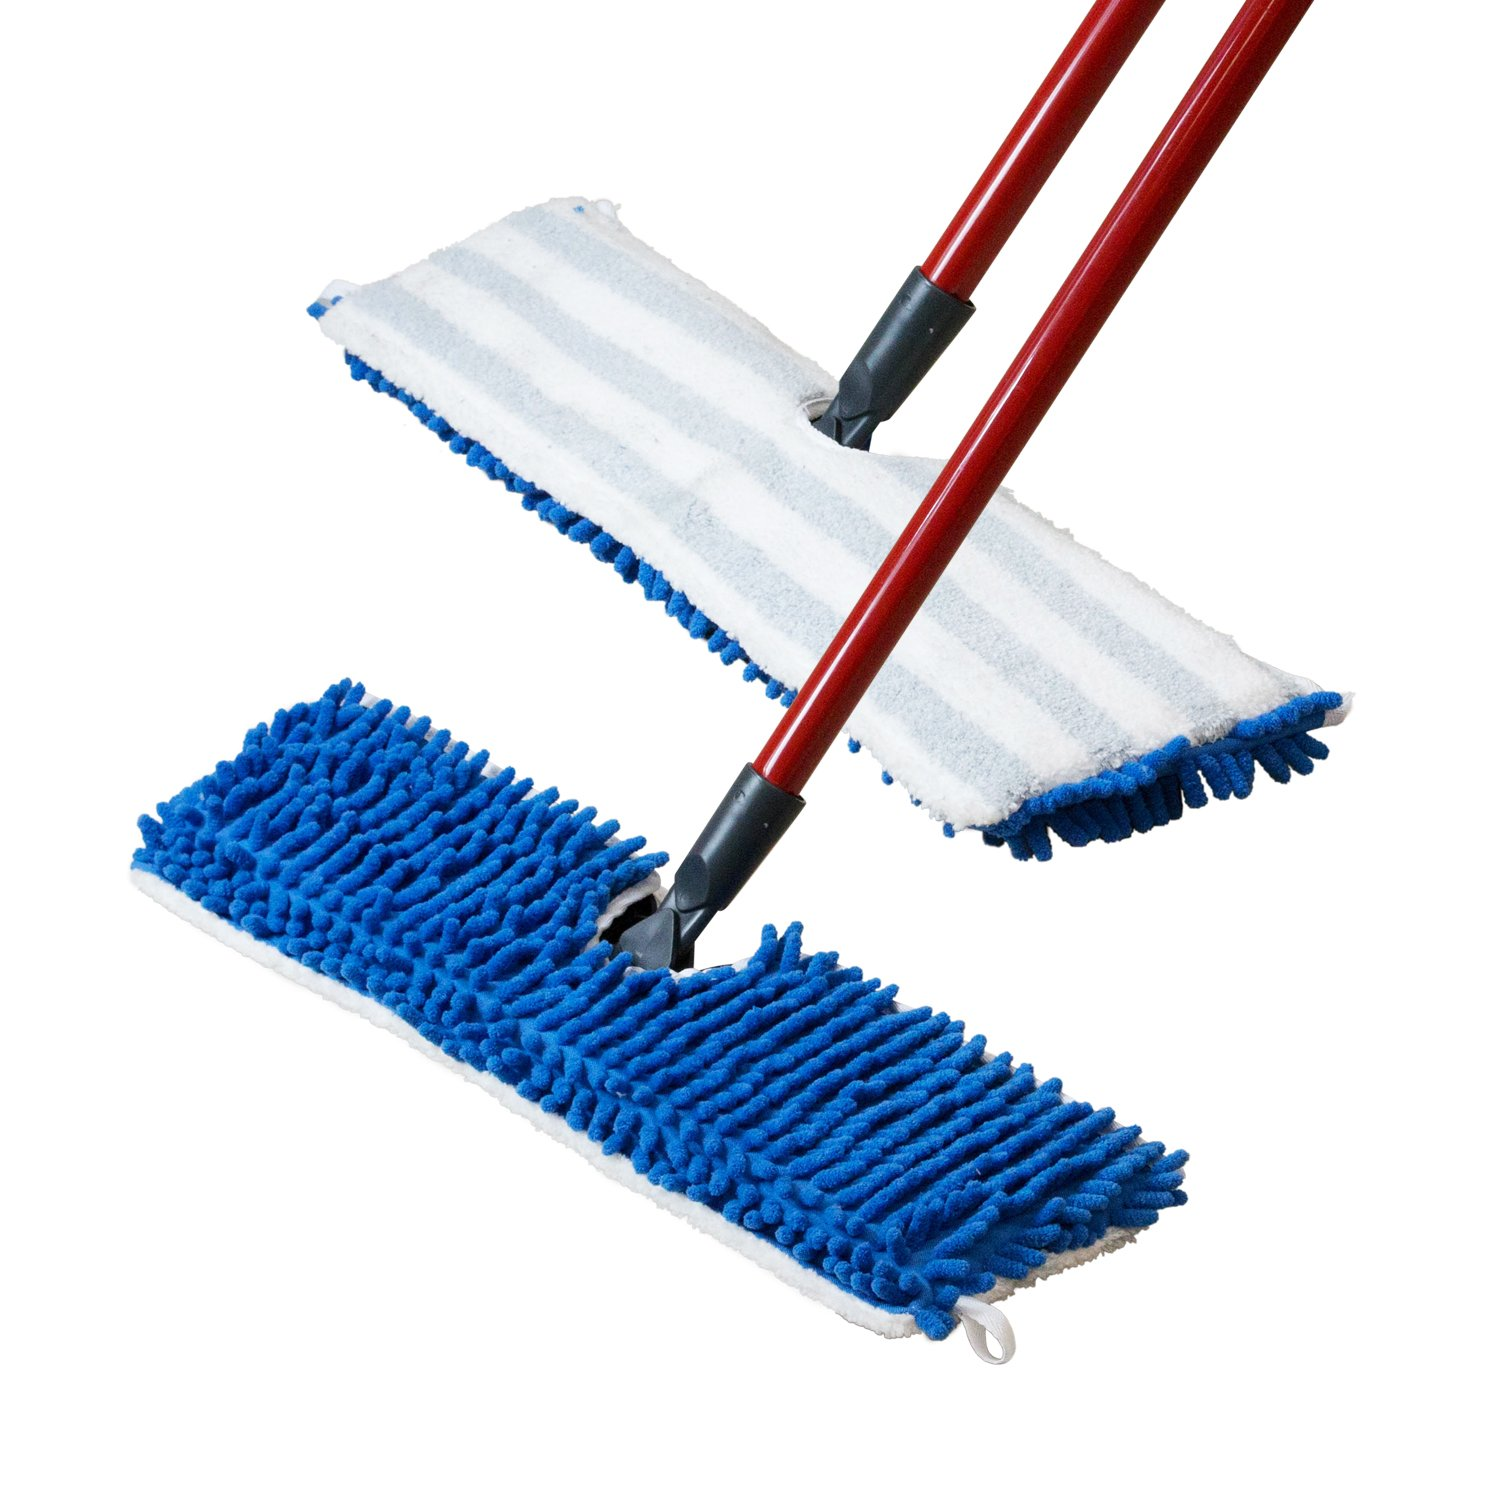 18 inch Houseables Flip Mop Refills All Surface Cleaning 18 L X 6 W TA Machine Washable Dual-Action Microfiber Head Floor Mops 3 Pack 18 L X 6 W Double Sided Velcro Flat Sponge Replacement Pads Dry//Wet